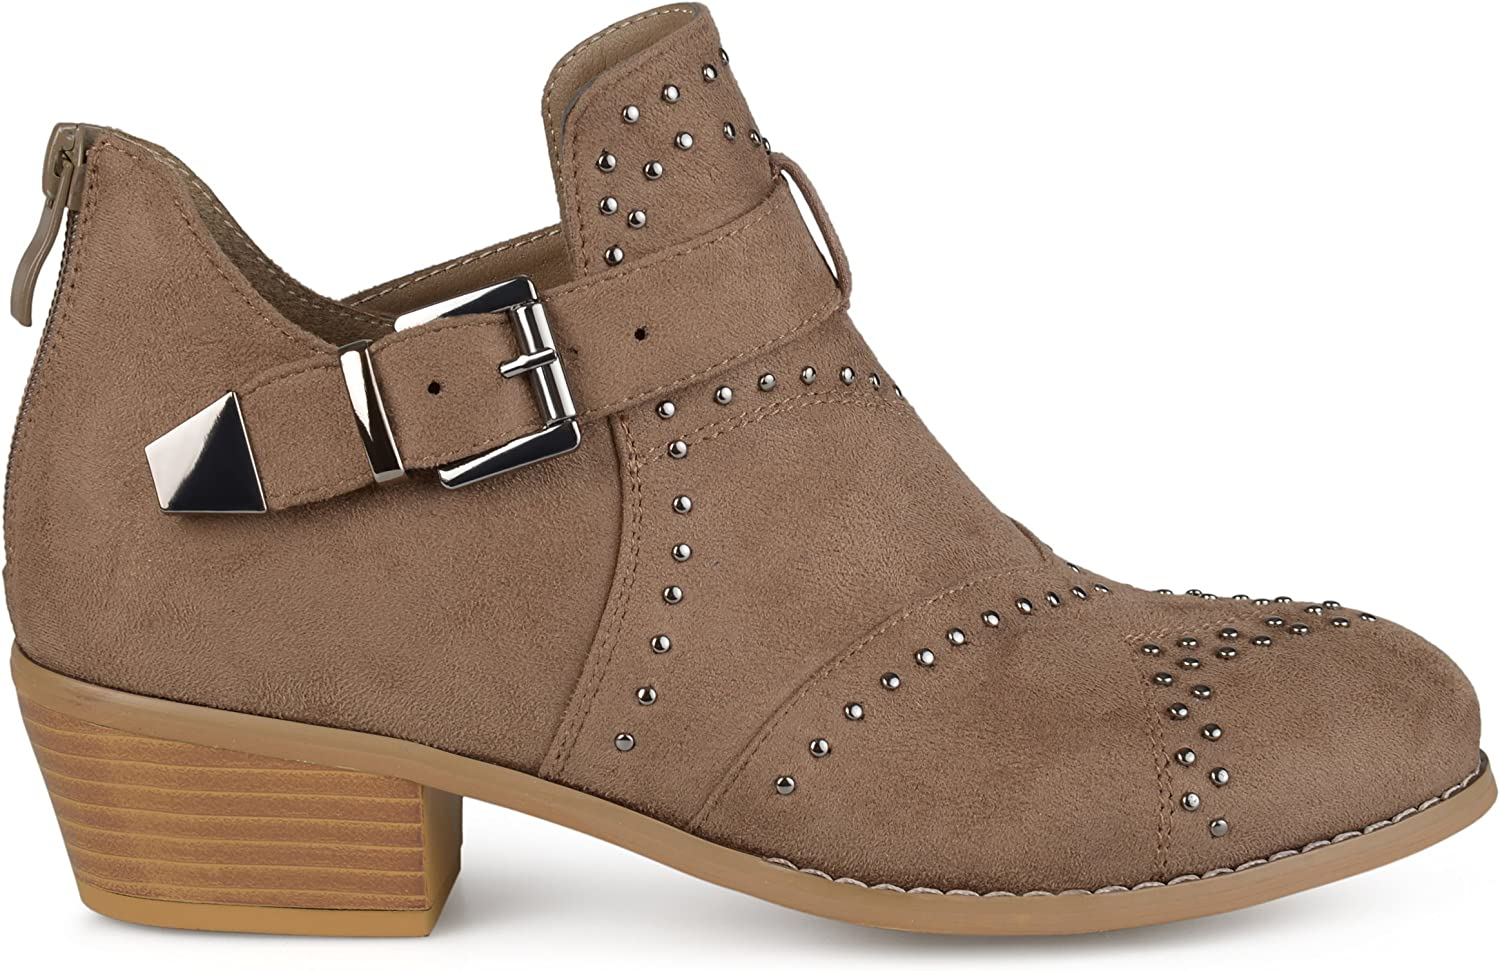 Brinley Co Womens Faux Suede Decorative Ankle Strap Studded Booties